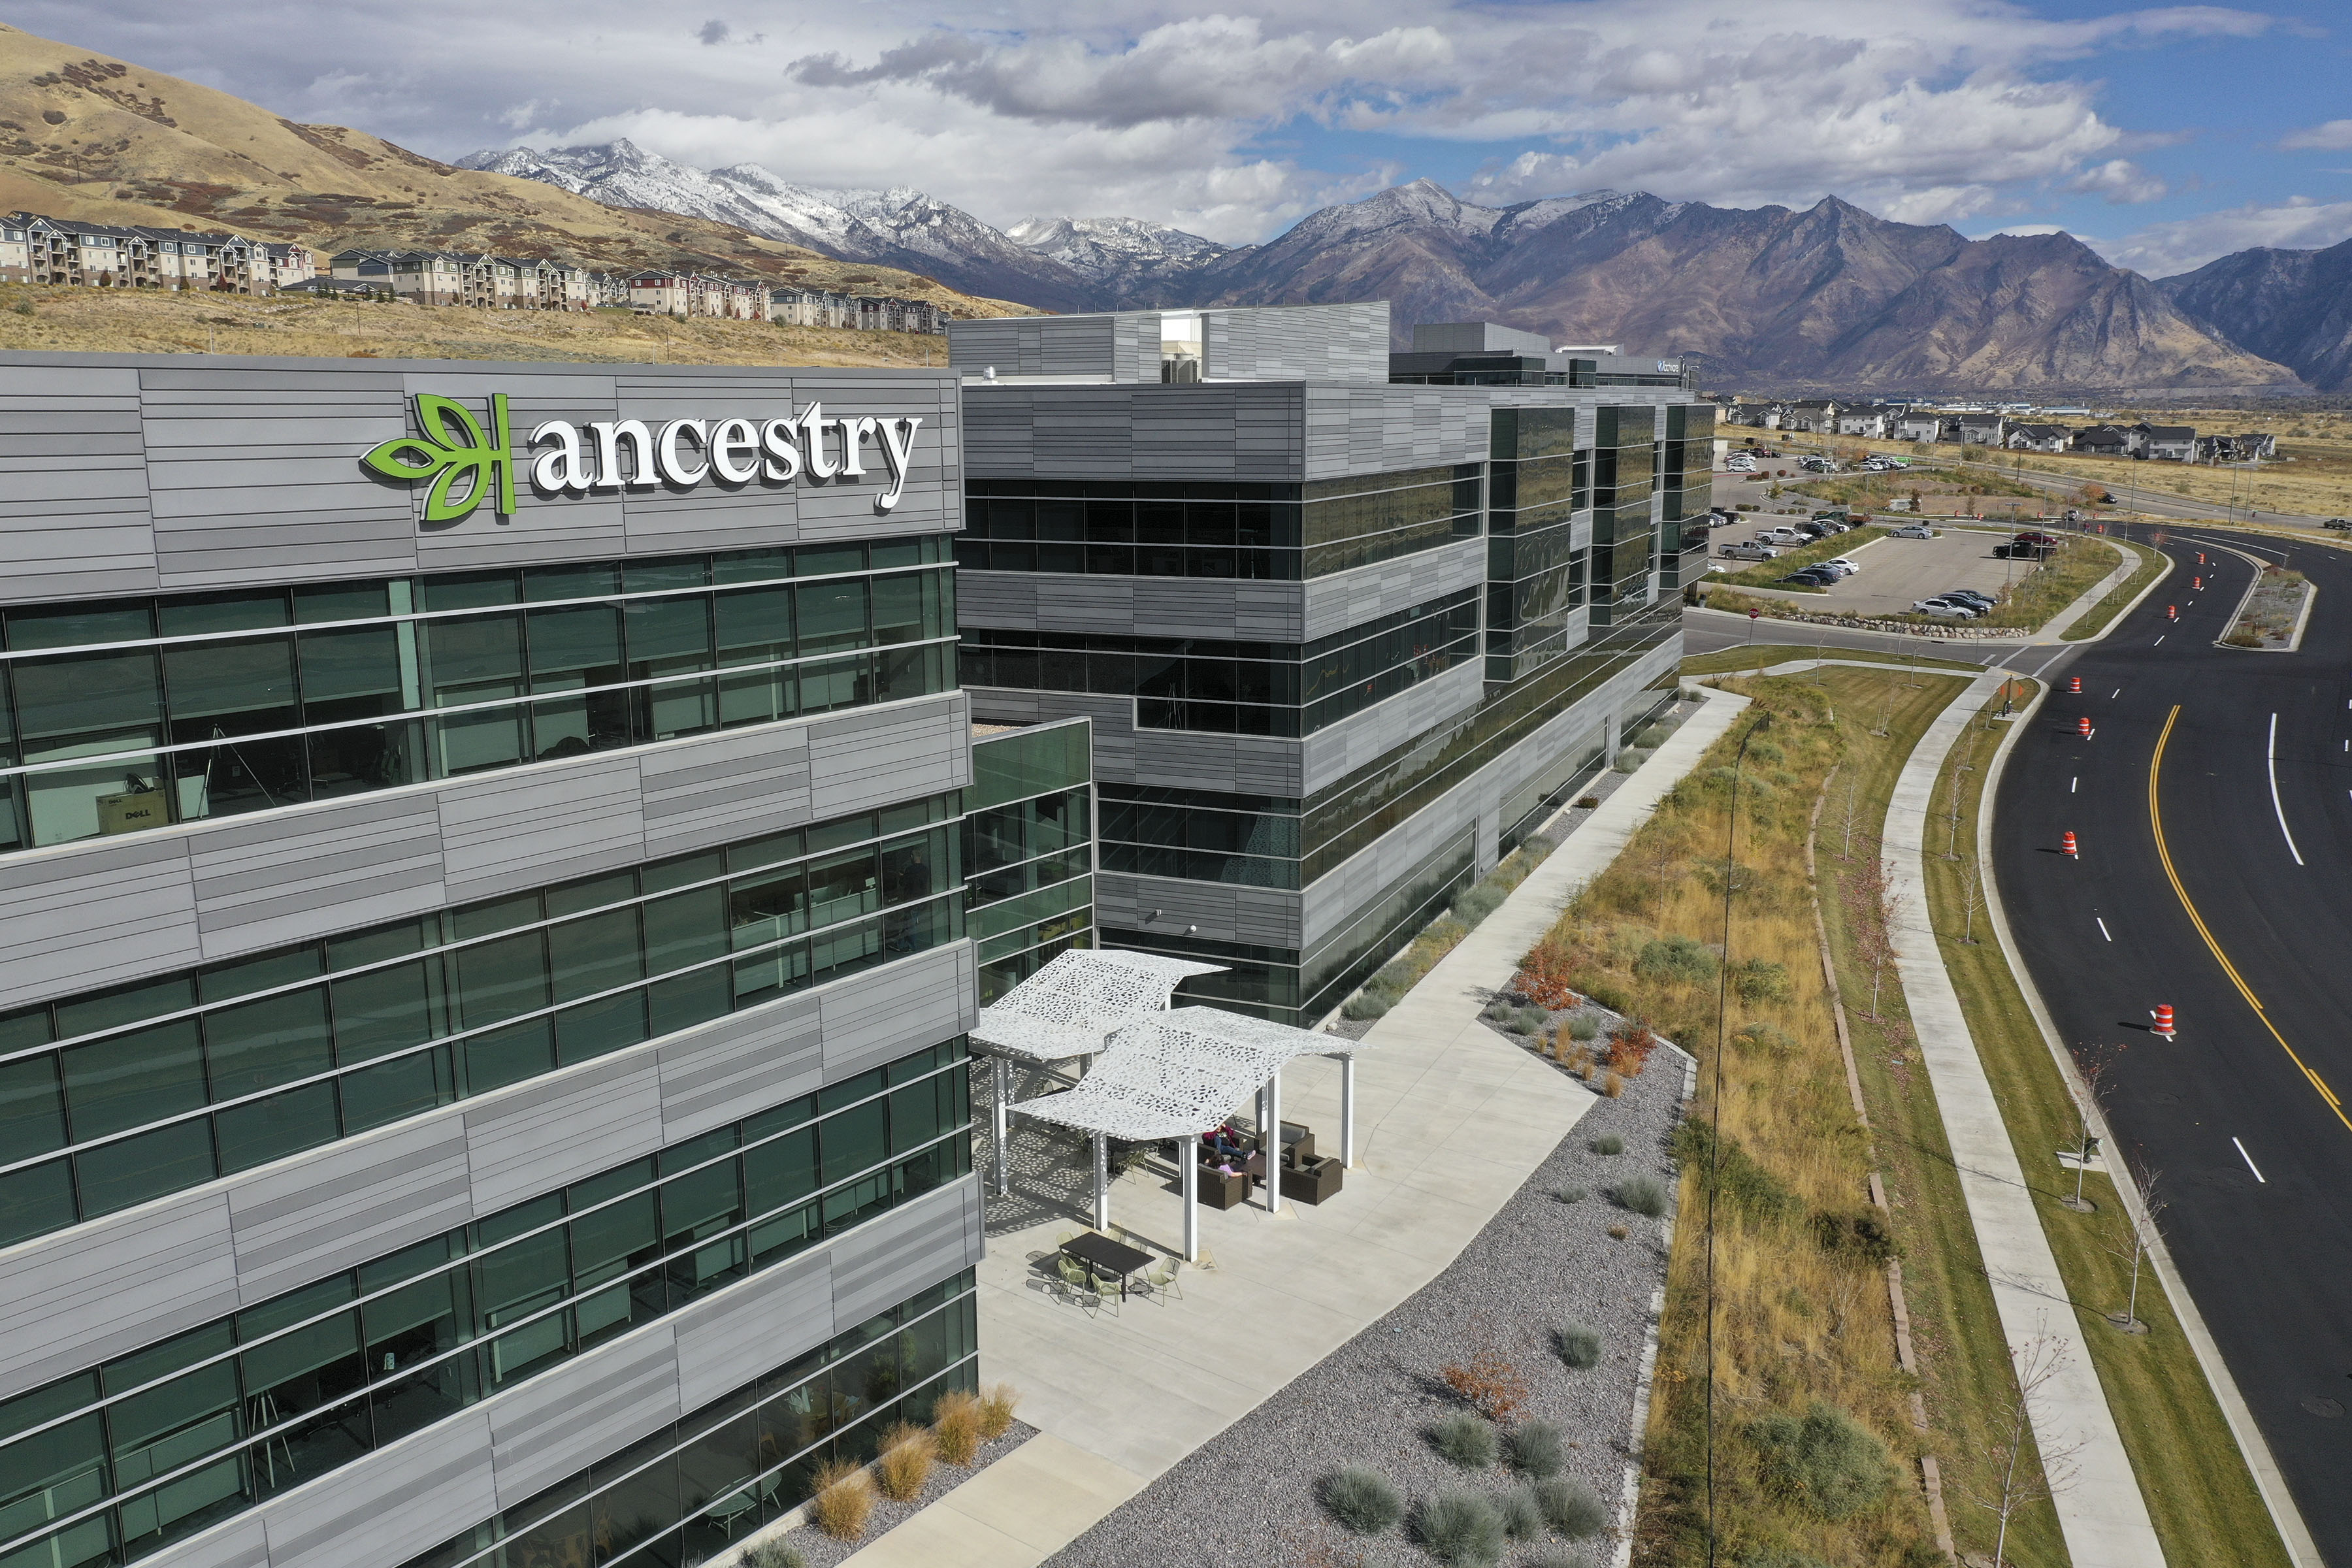 Ancestry's office building in Lehi is pictured on Tuesday, Oct. 22, 2019.